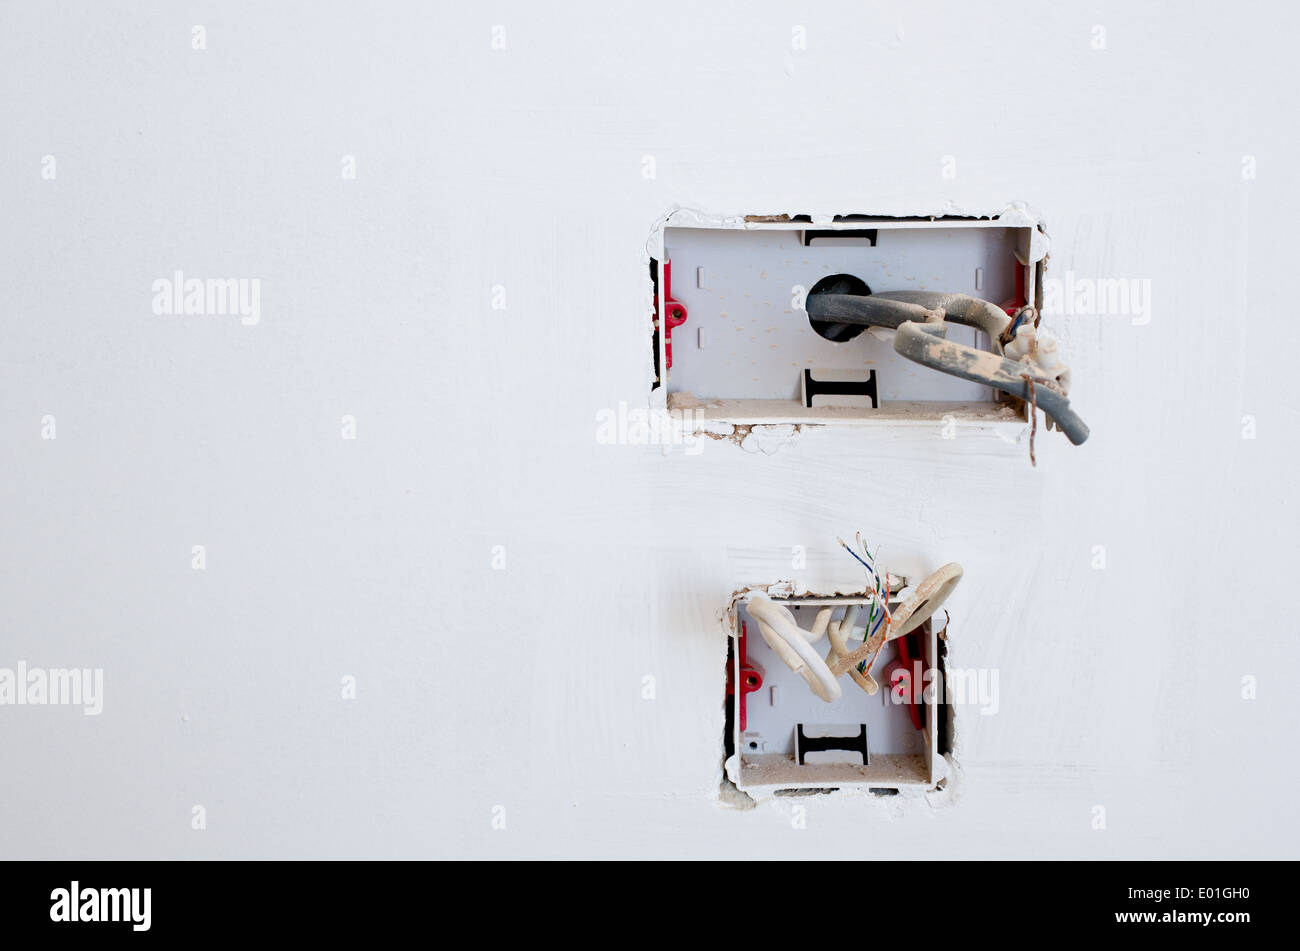 Electrical Socket Wiring Image Stock Photos Ac Exposed In An Unfinished Plug